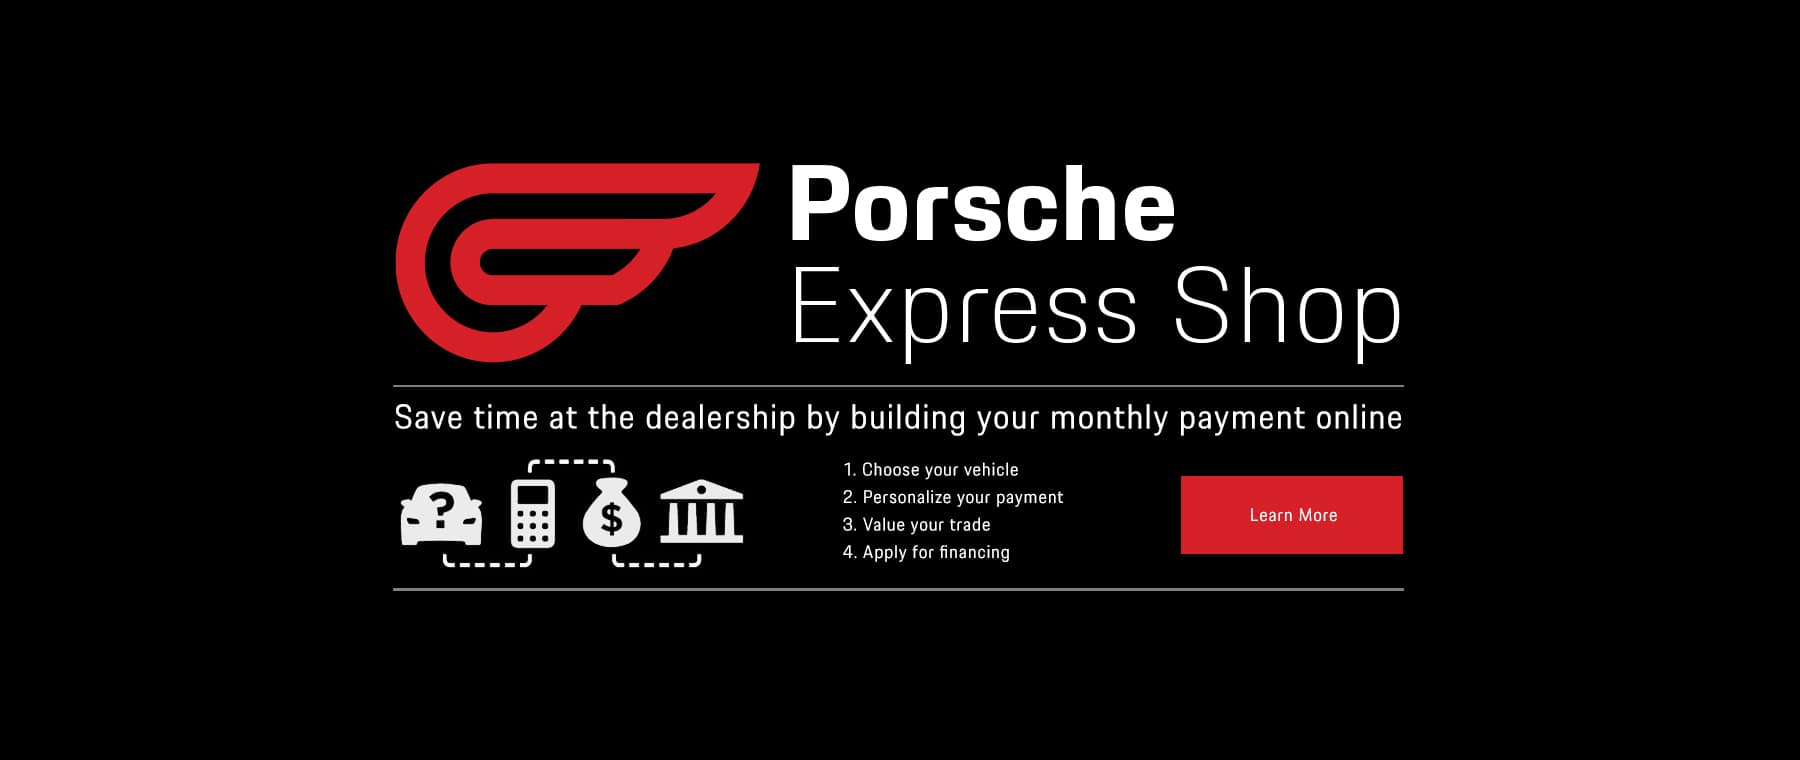 Save time at the dealership by building your monthly payments online with Porsche Express Shop.